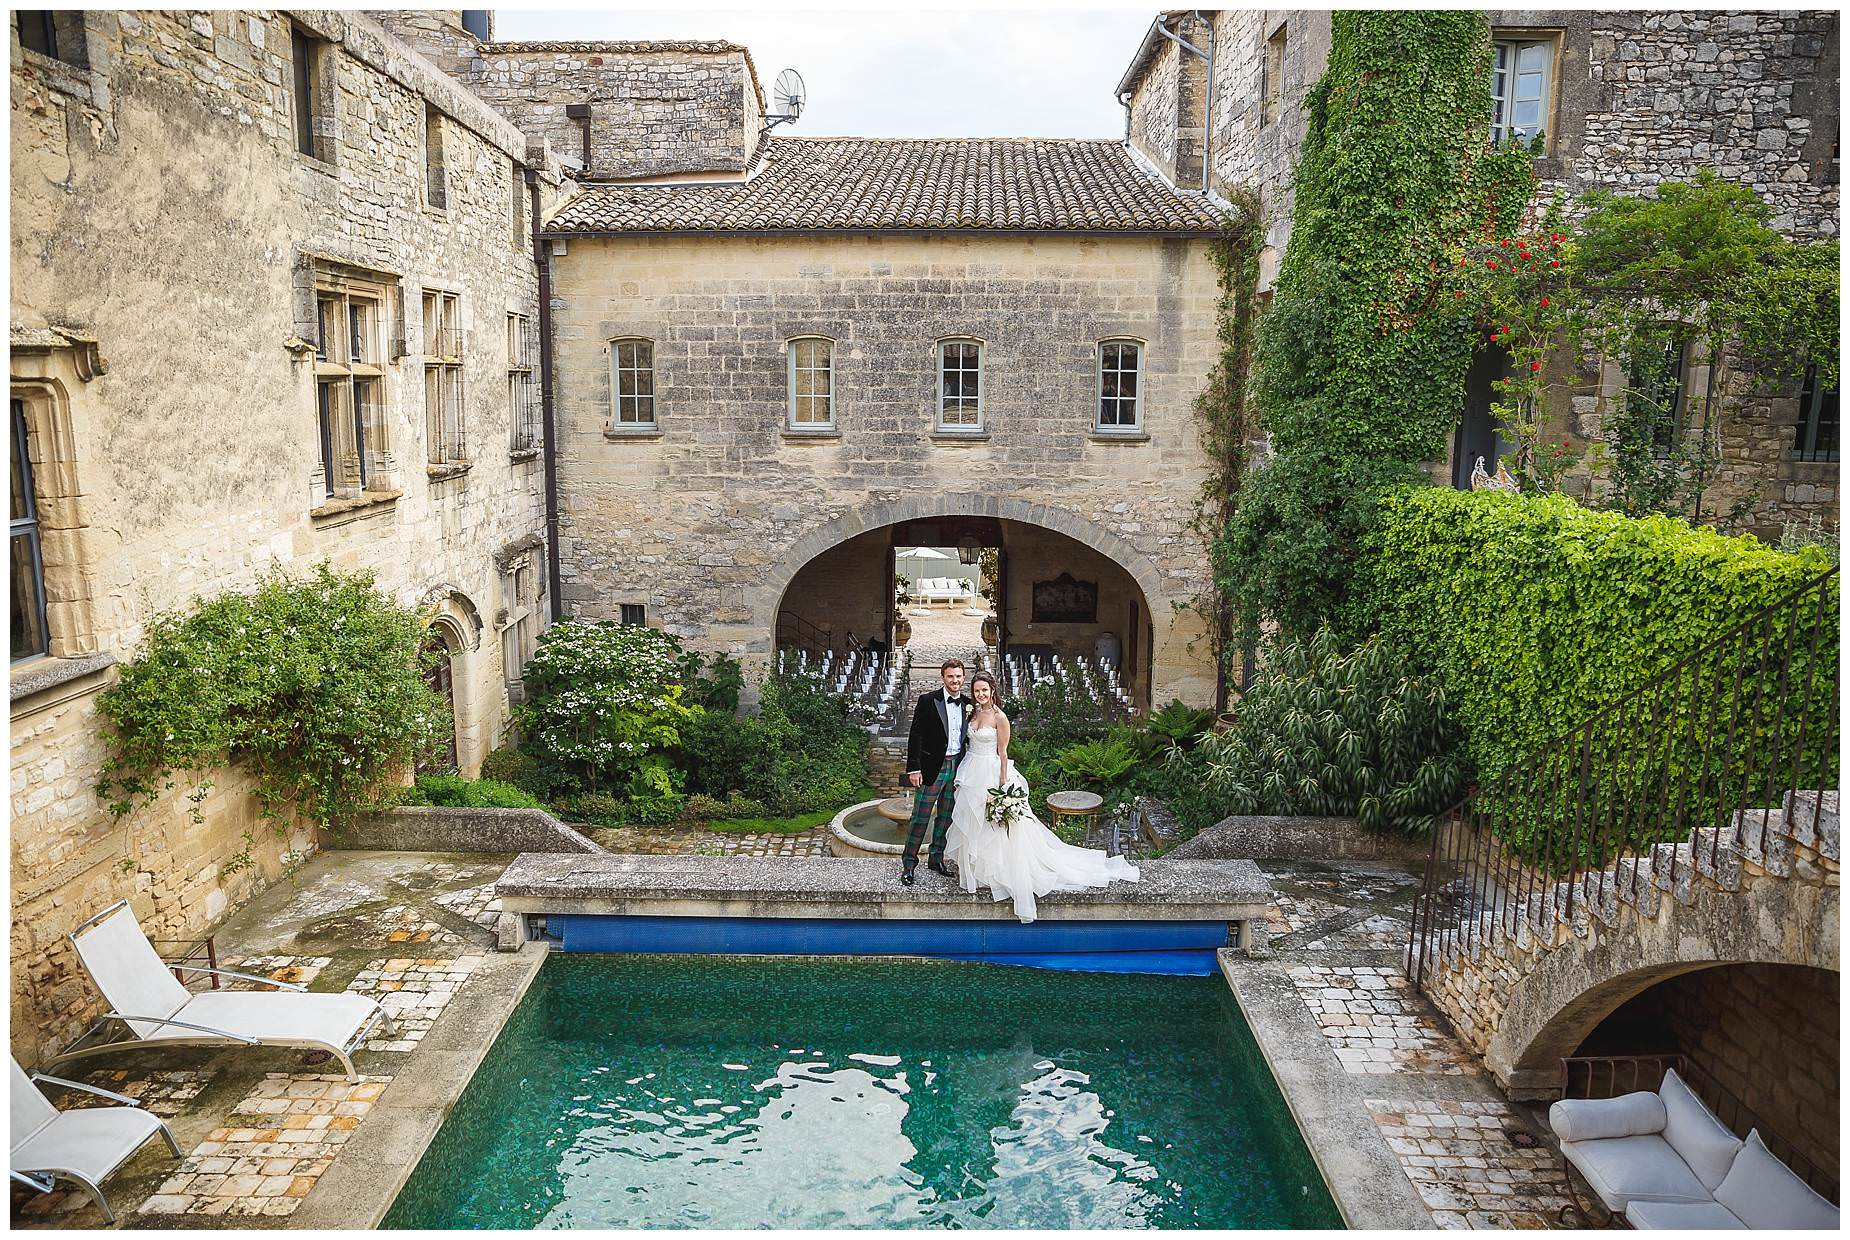 wedding at chateau provence uzes